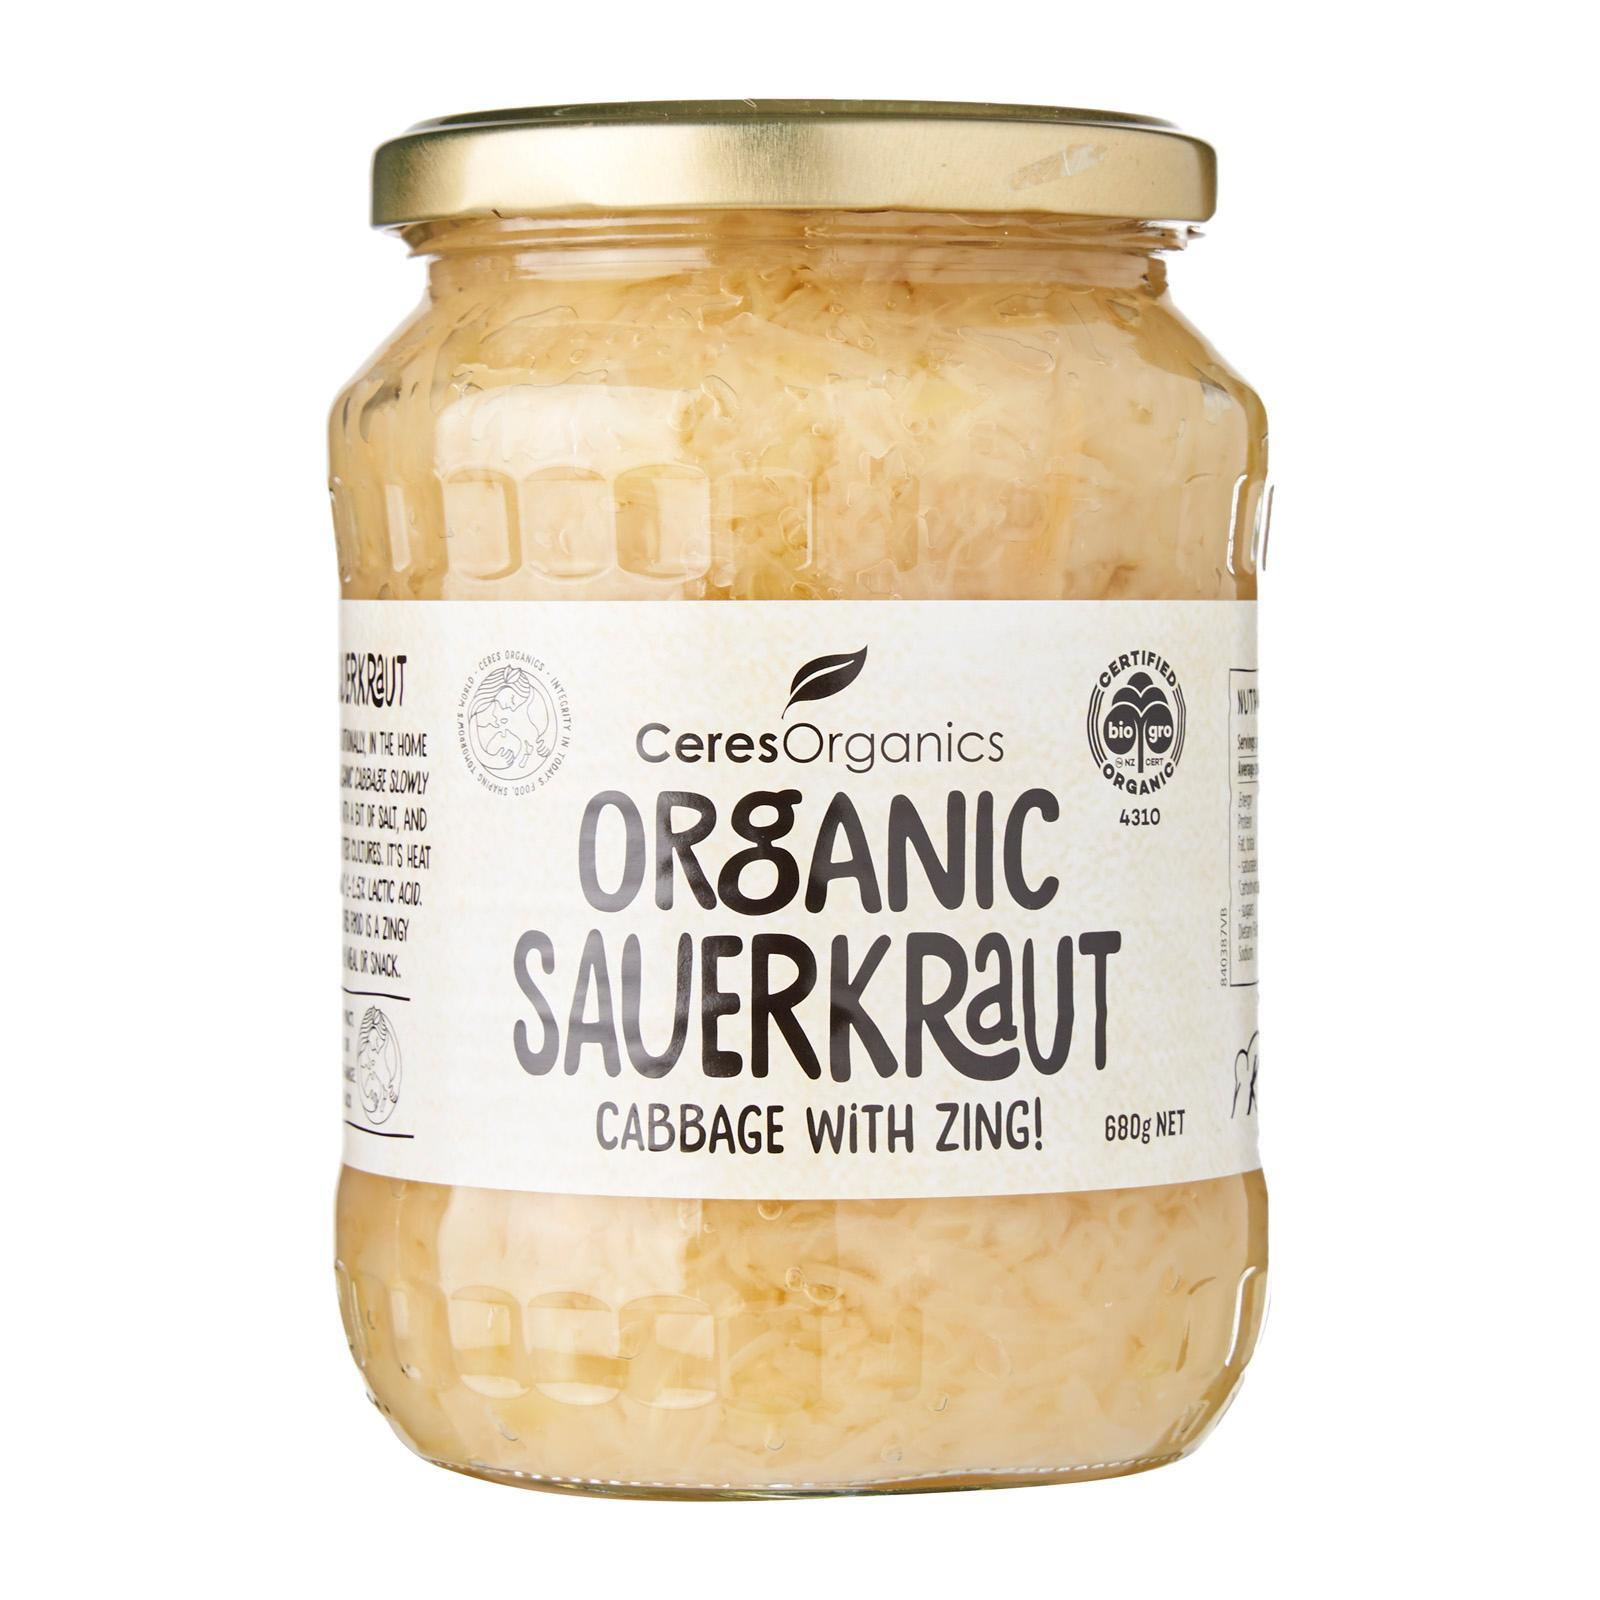 CERES ORGANICS Sauerkraut - by Optimo Foods